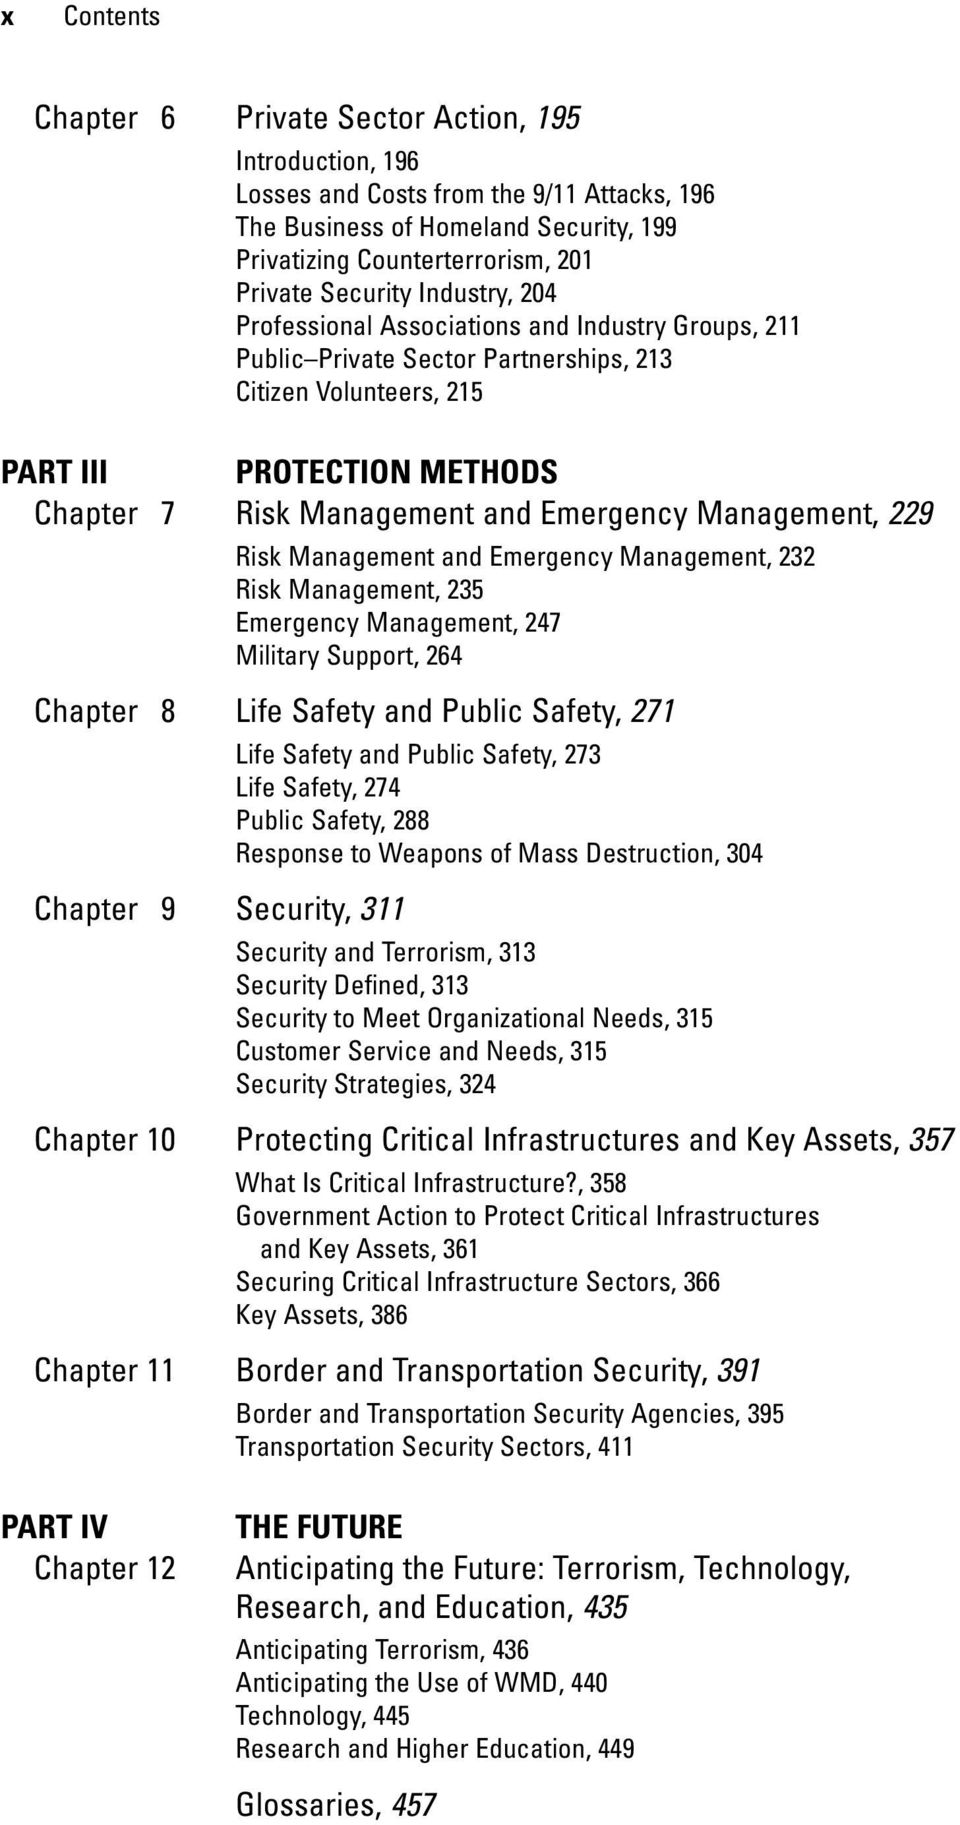 Management, 229 Risk Management and Emergency Management, 232 Risk Management, 235 Emergency Management, 247 Military Support, 264 Chapter 8 Life Safety and Public Safety, 271 Life Safety and Public